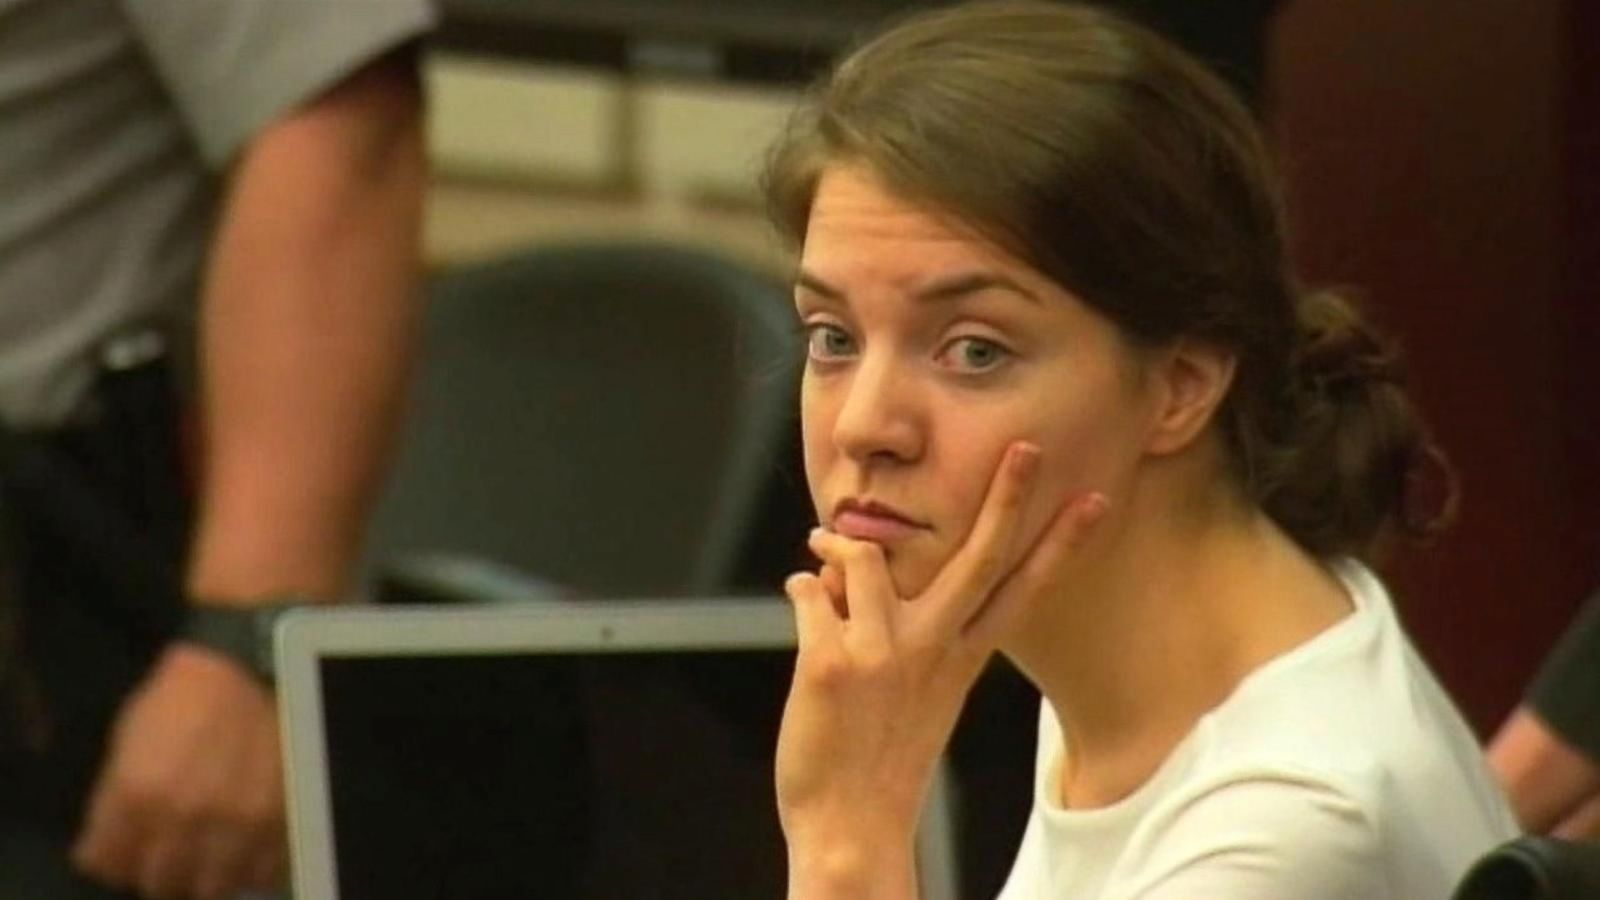 VIDEO: New Trial for Kentucky Woman Convicted of Boyfriend's Murder